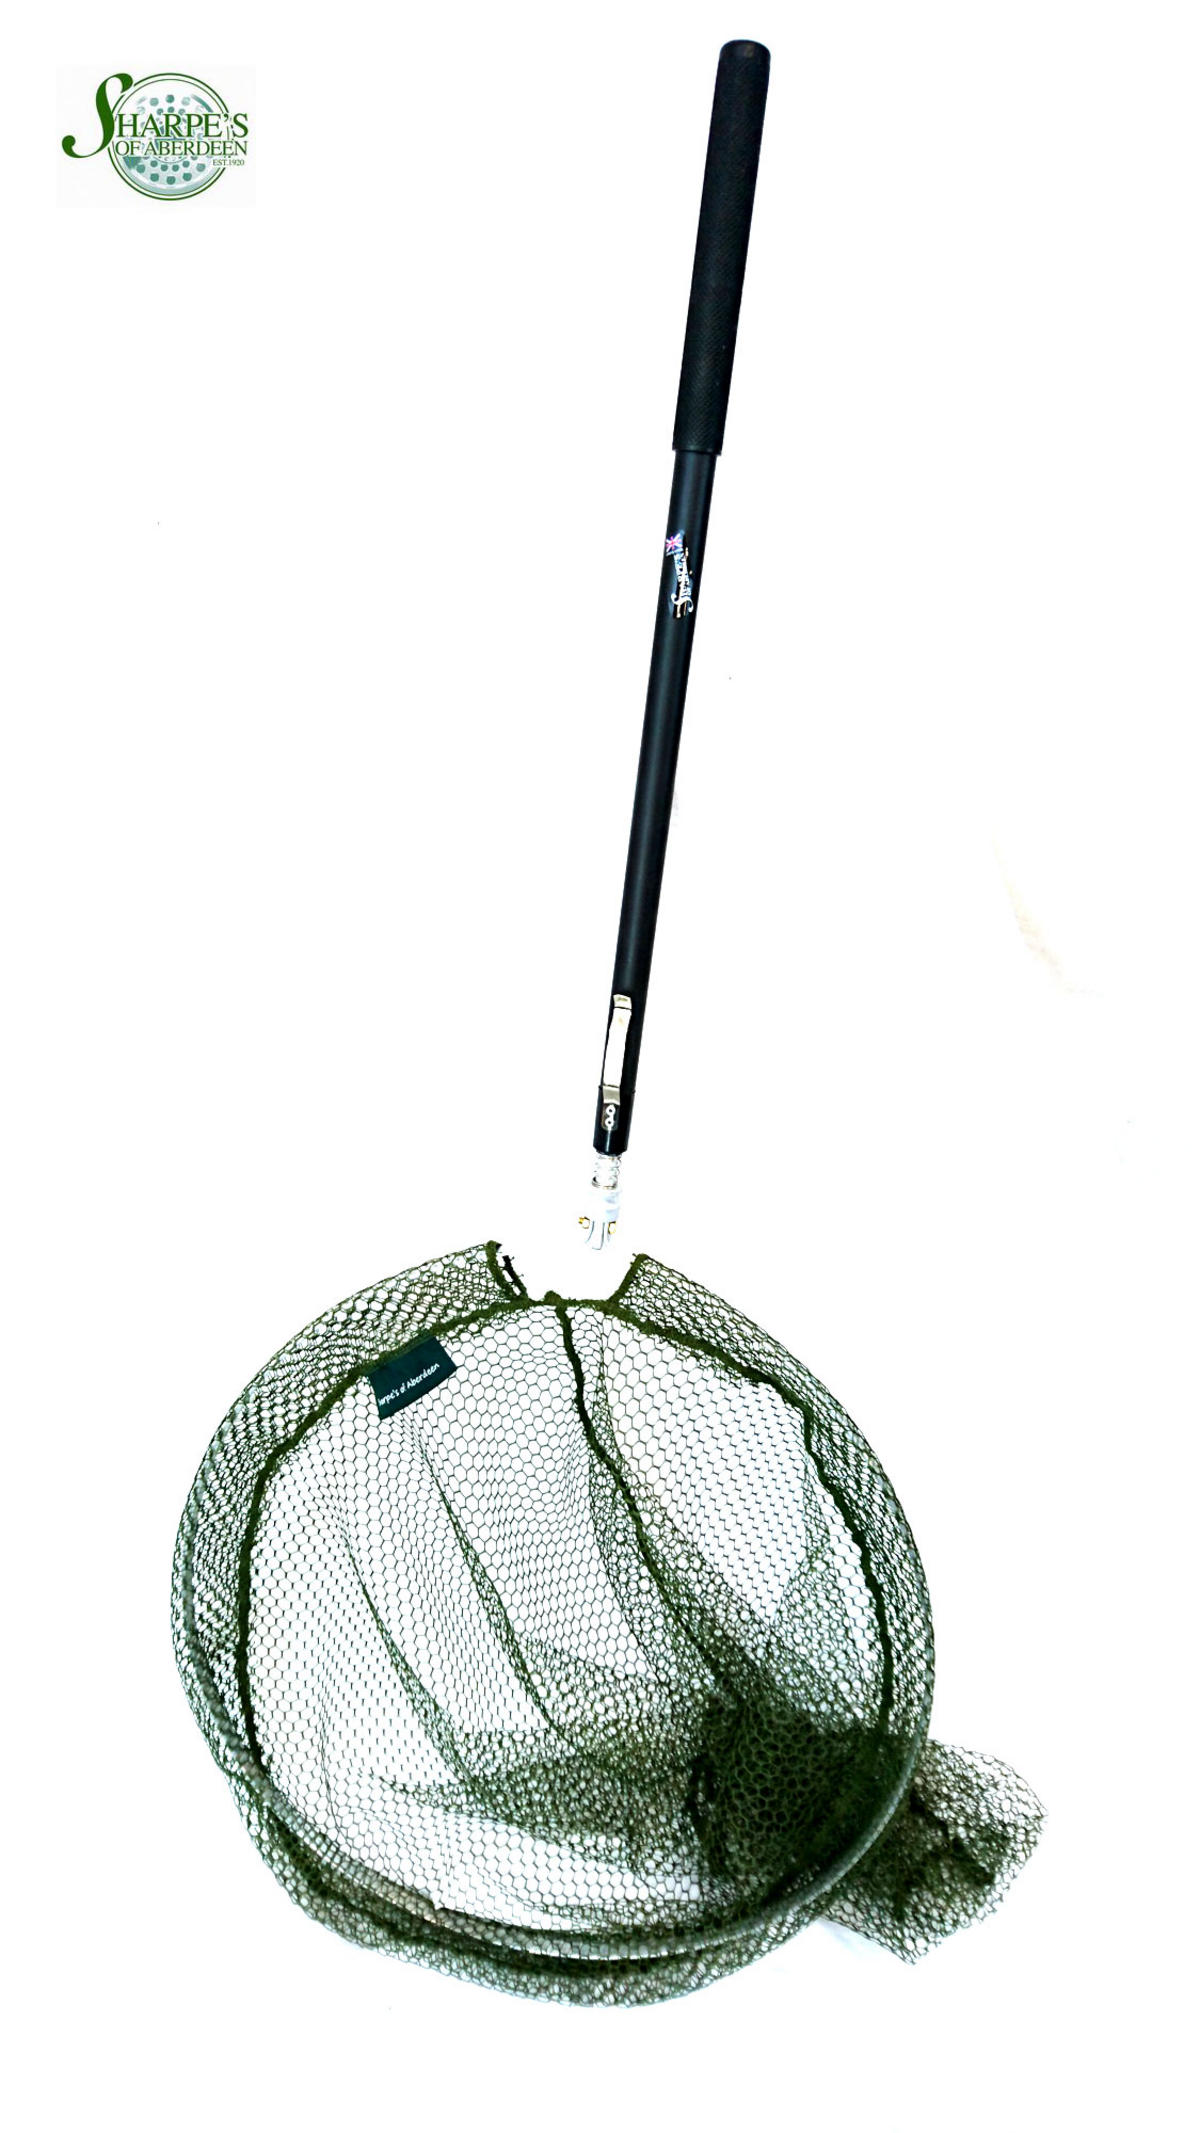 Sharpe's of Aberdeen Belmont SeaTrout Telescopic Landing Net Lakeside Soft Mesh